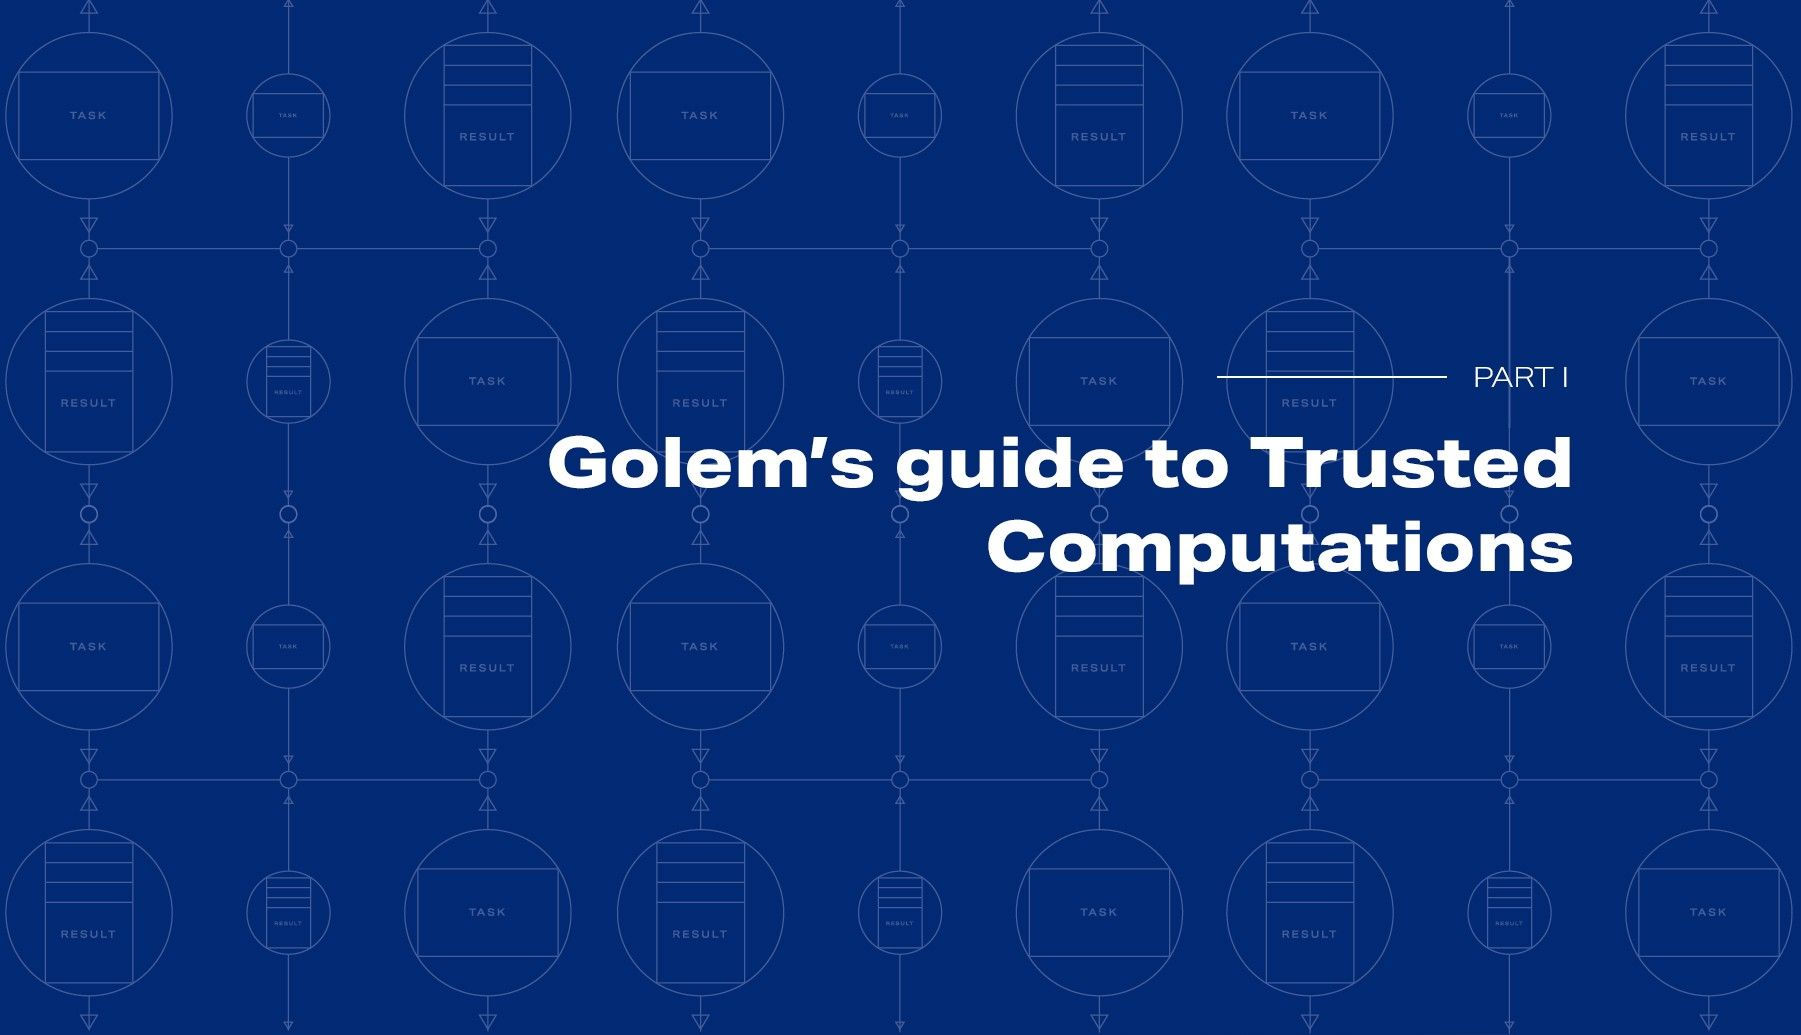 An overview of a computation's lifecycle in Golem